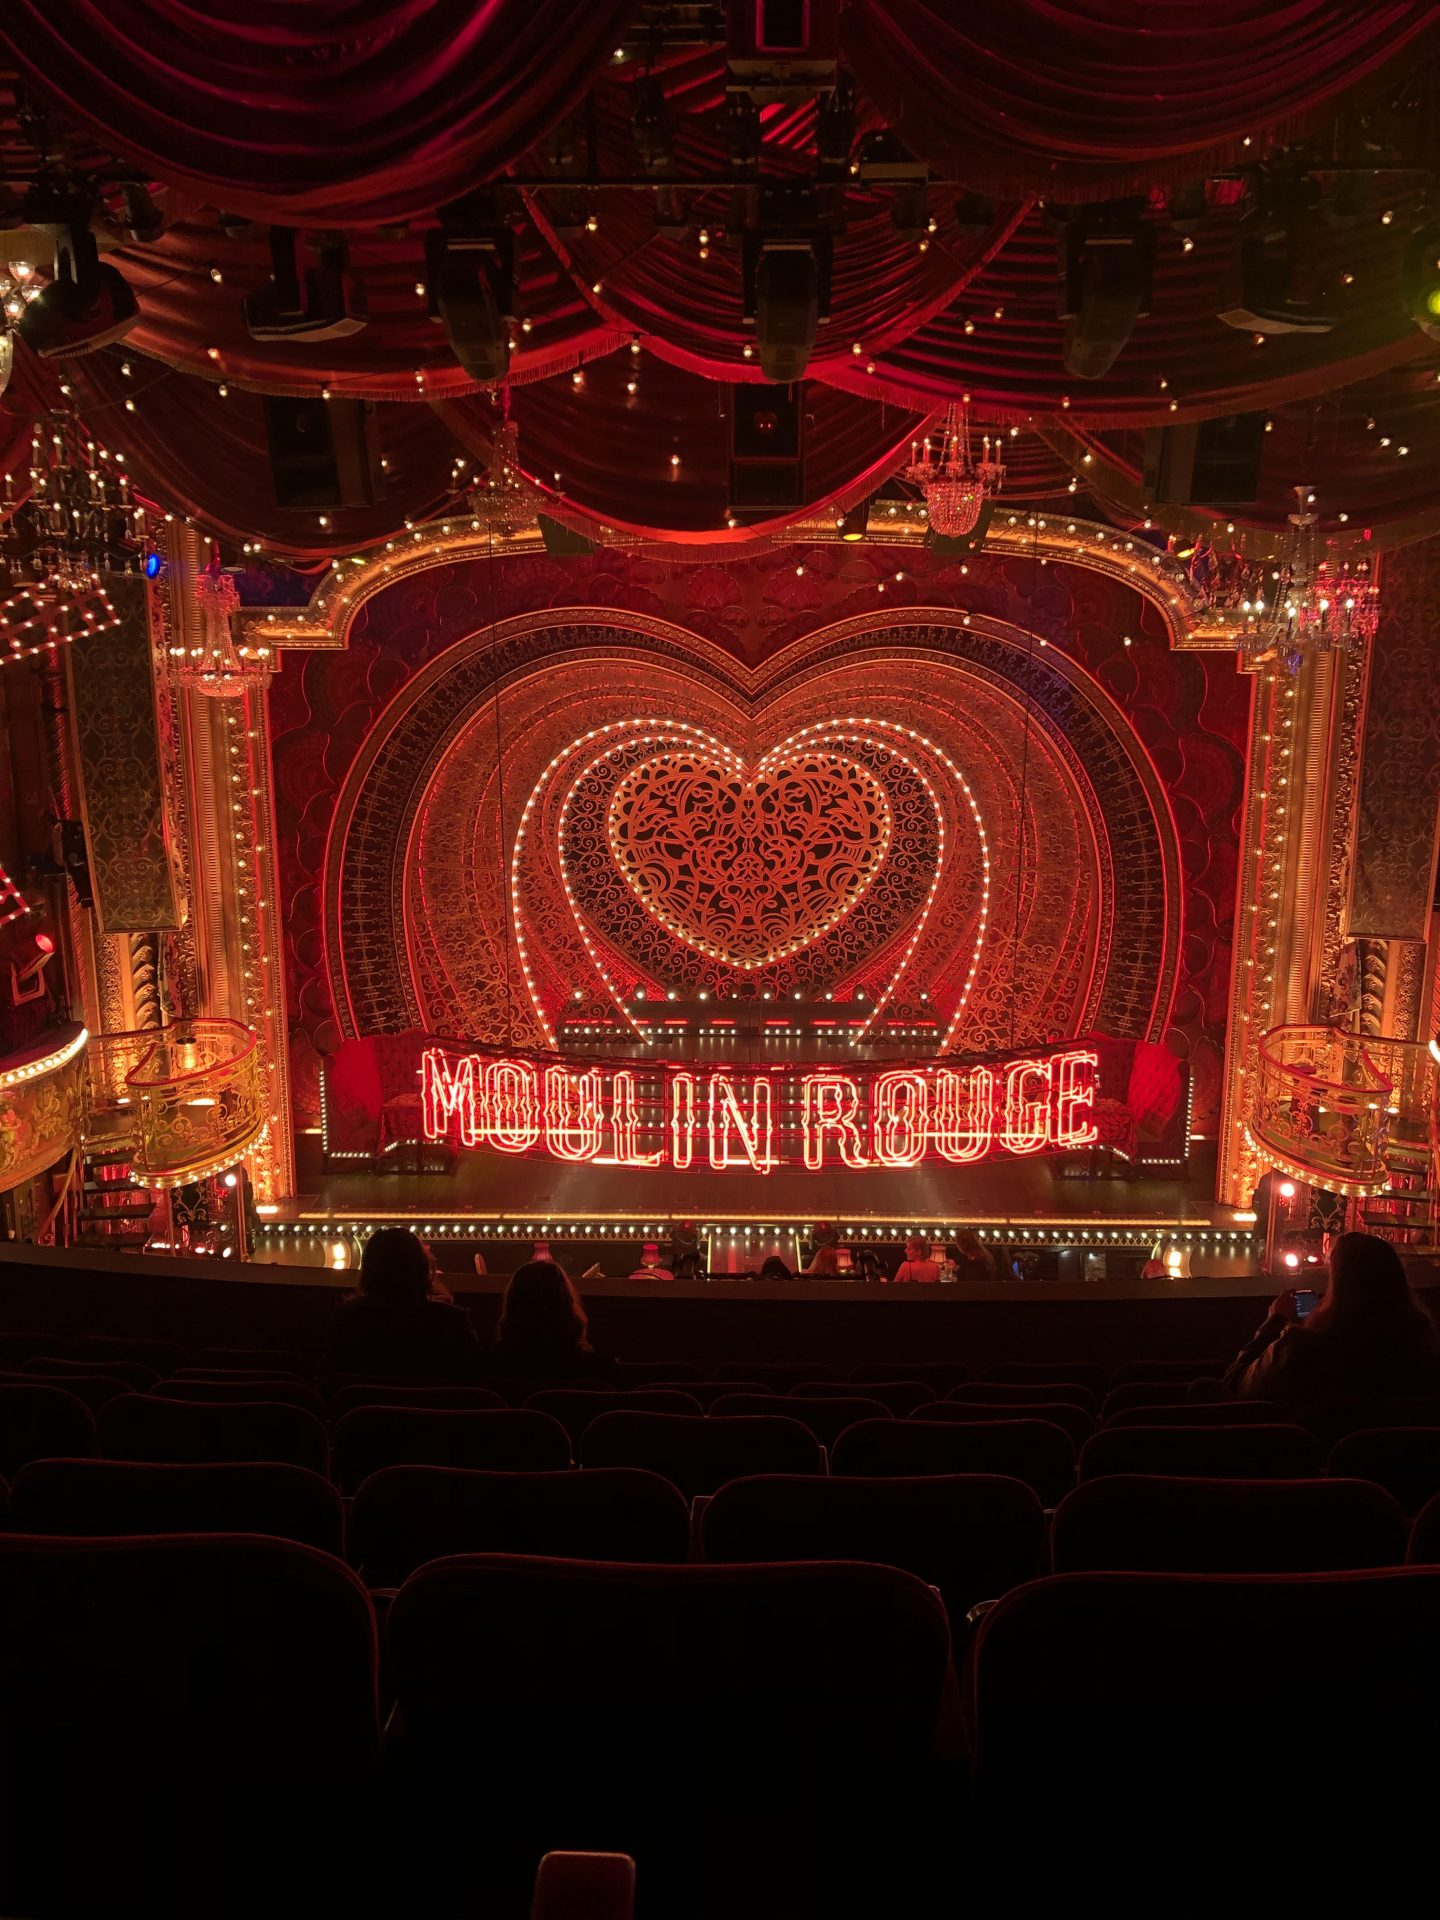 New York Moulin Rouge